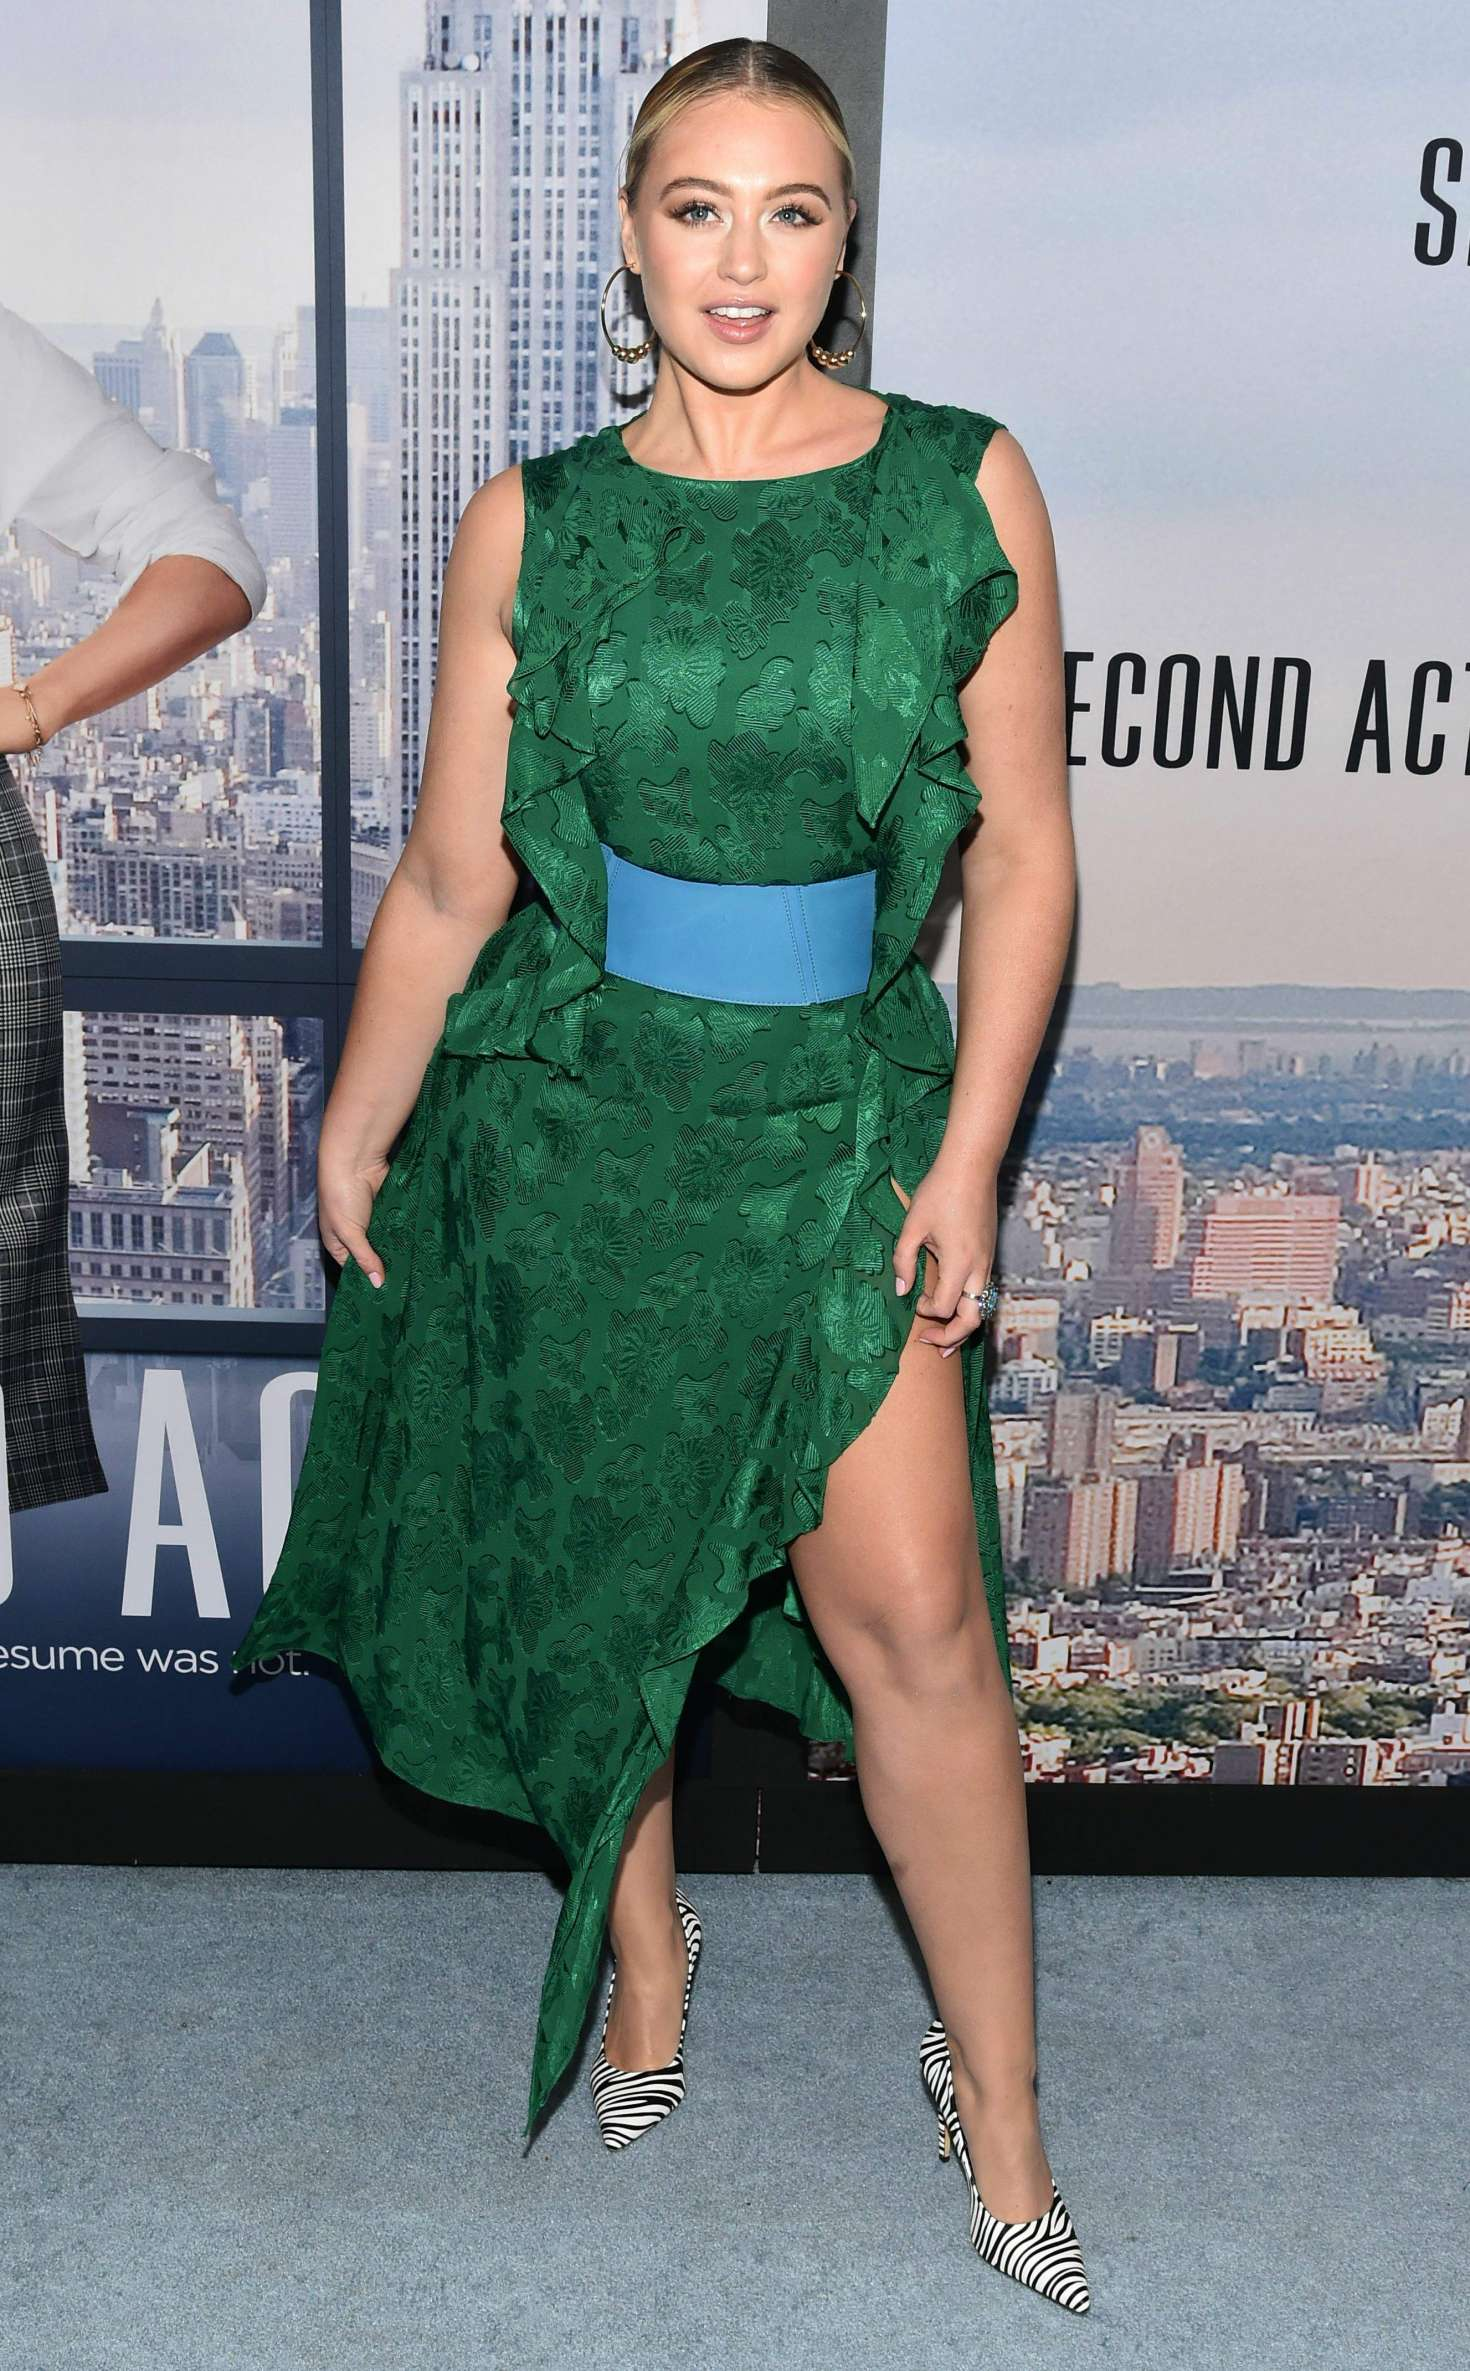 Iskra Lawrence 2018 : Iskra Lawrence: Second Act Premiere in NYC -10